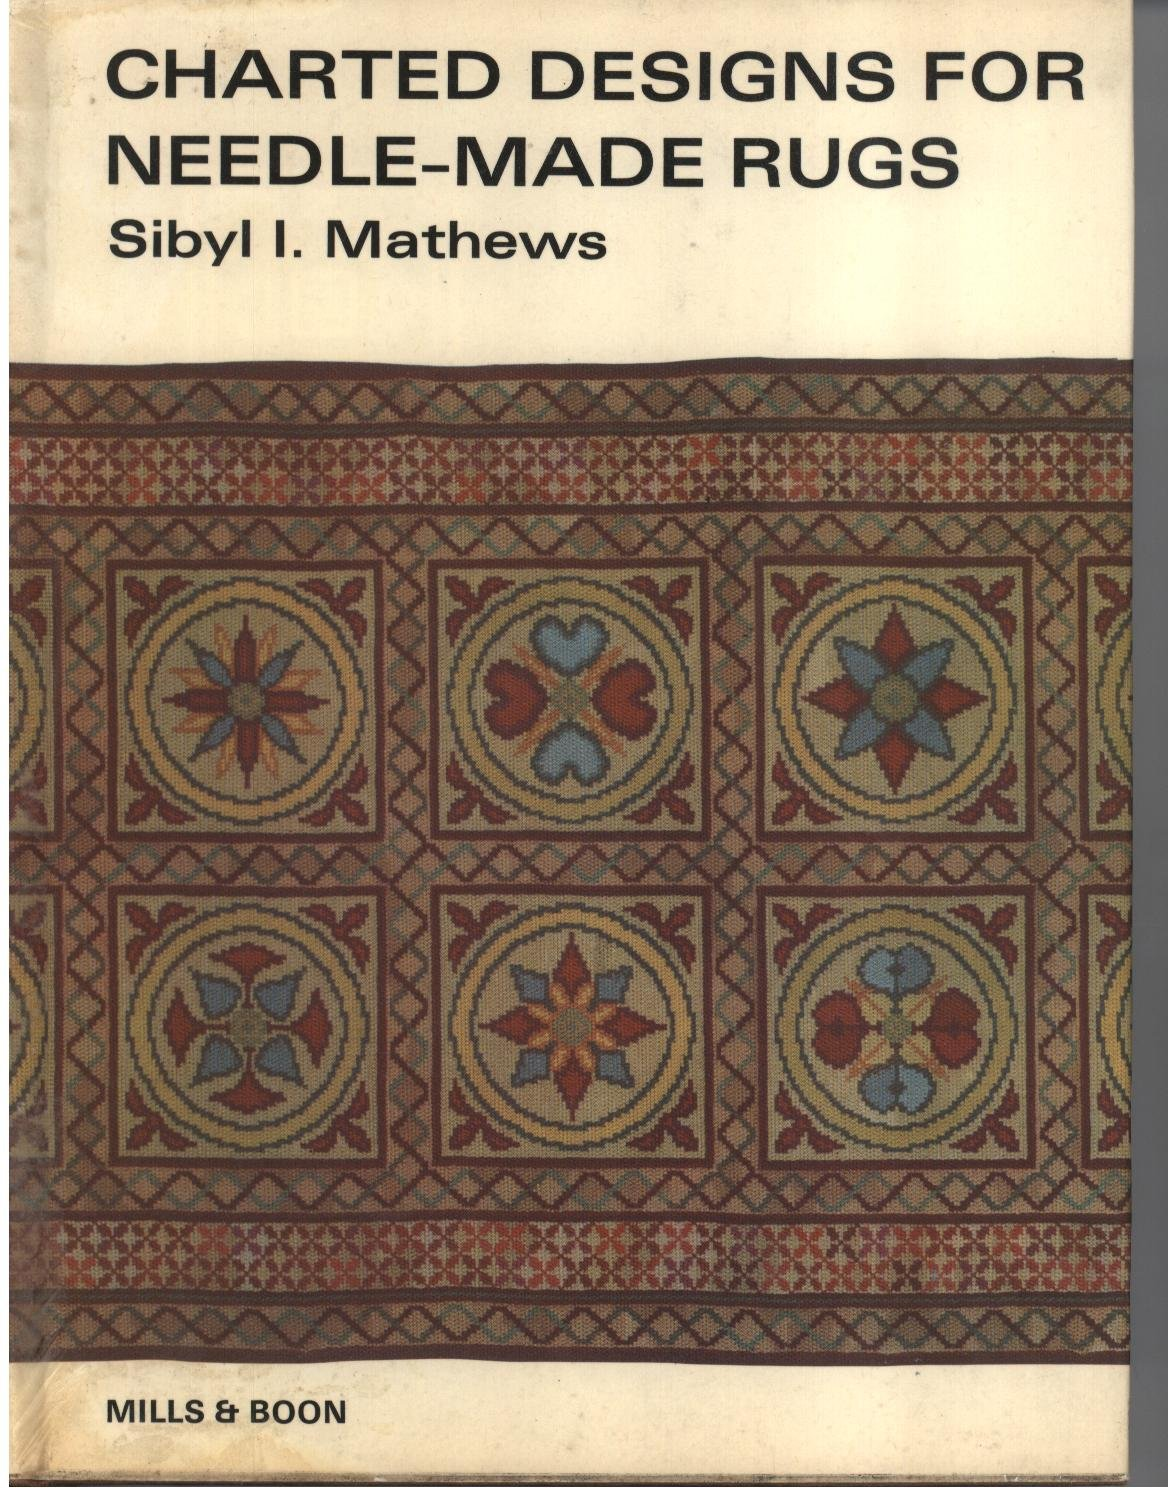 Charted Designs For Needle-made Rugs.